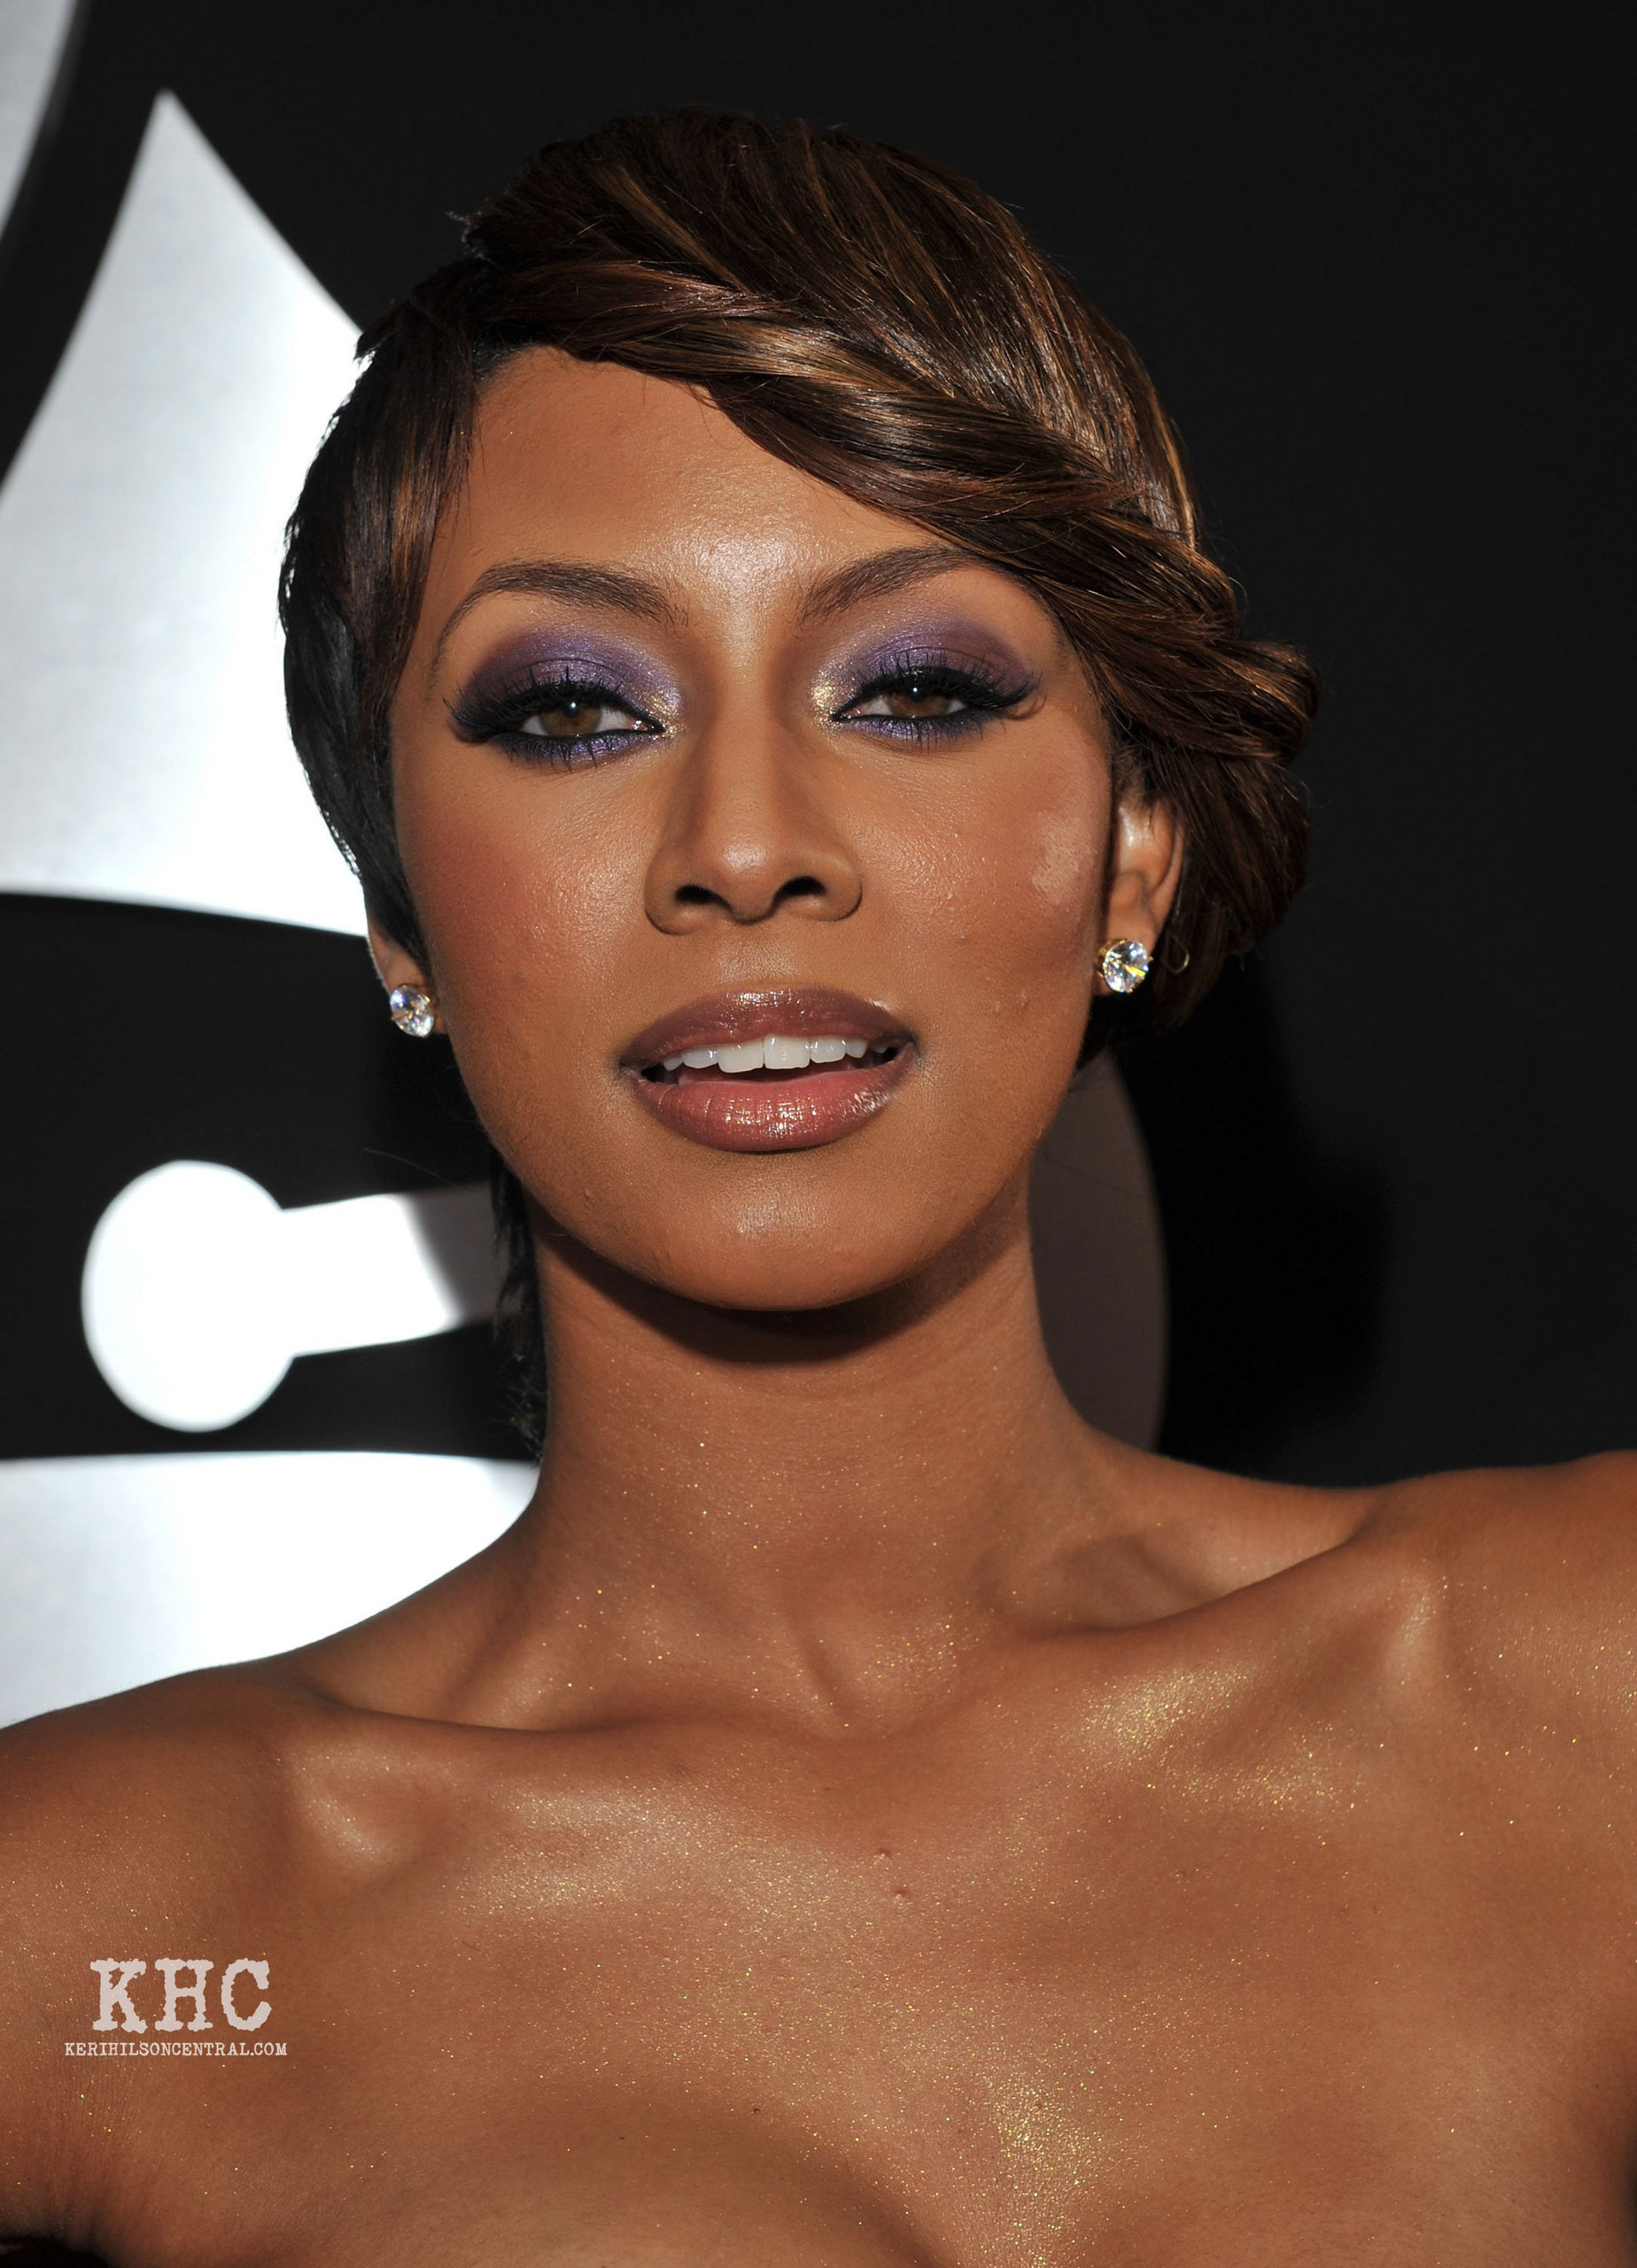 Keri Hilson - Wallpaper Gallery